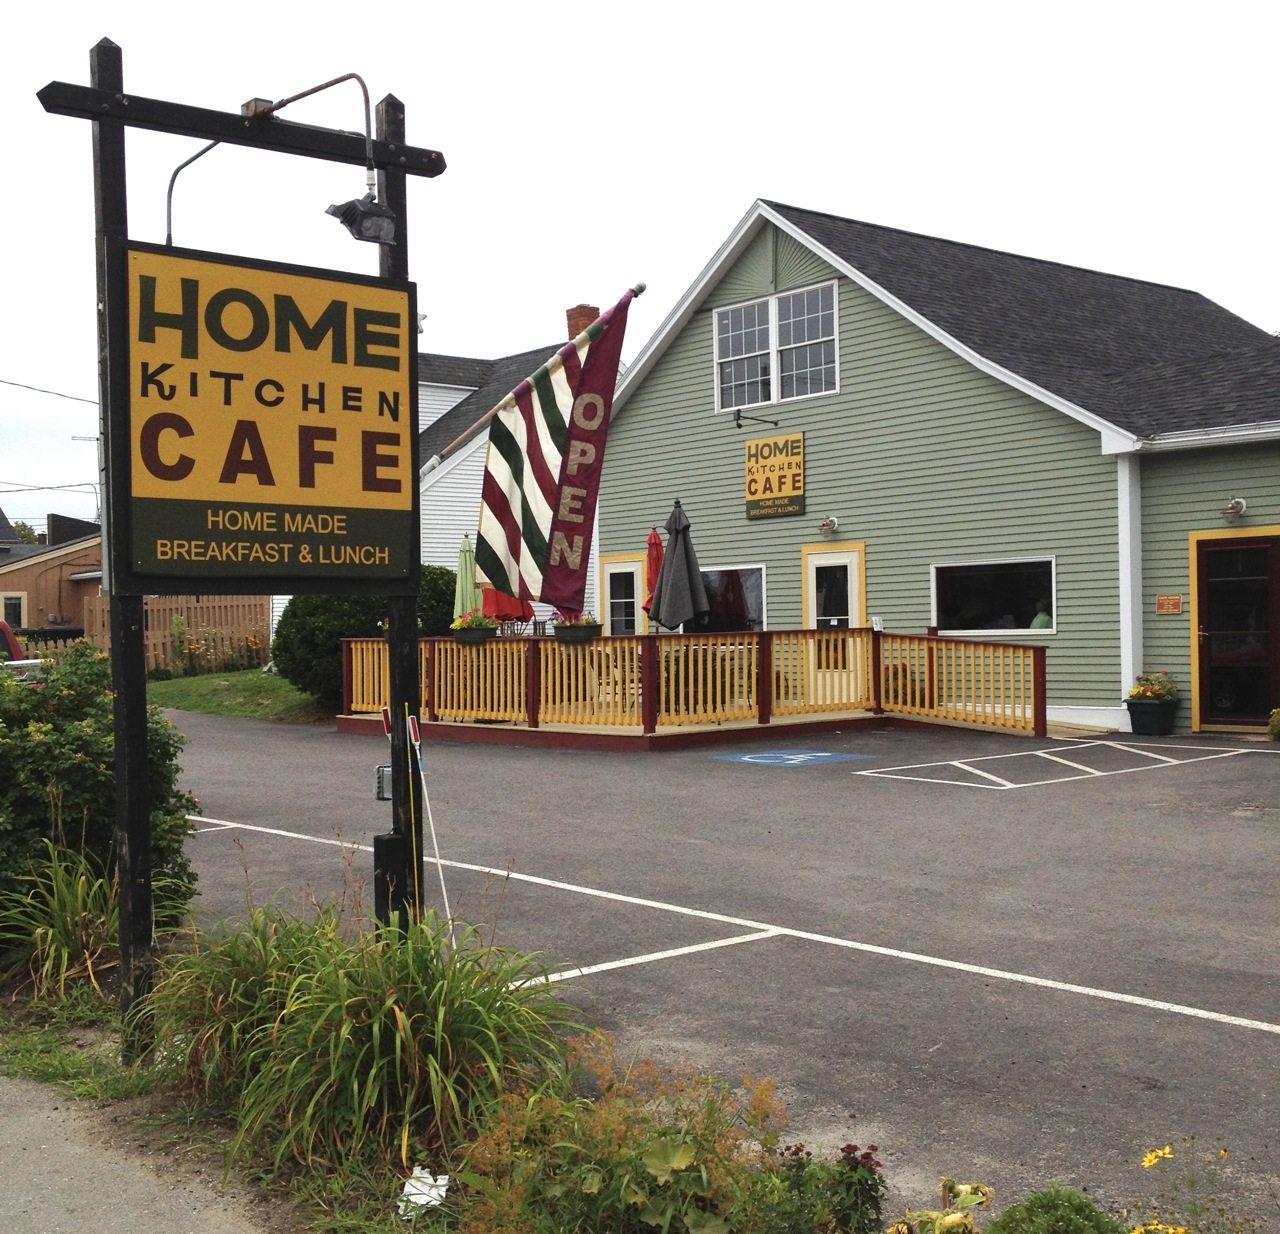 Home Kitchen Cafe Rockland Me. Brick Oven Pizza Is One Of The ...